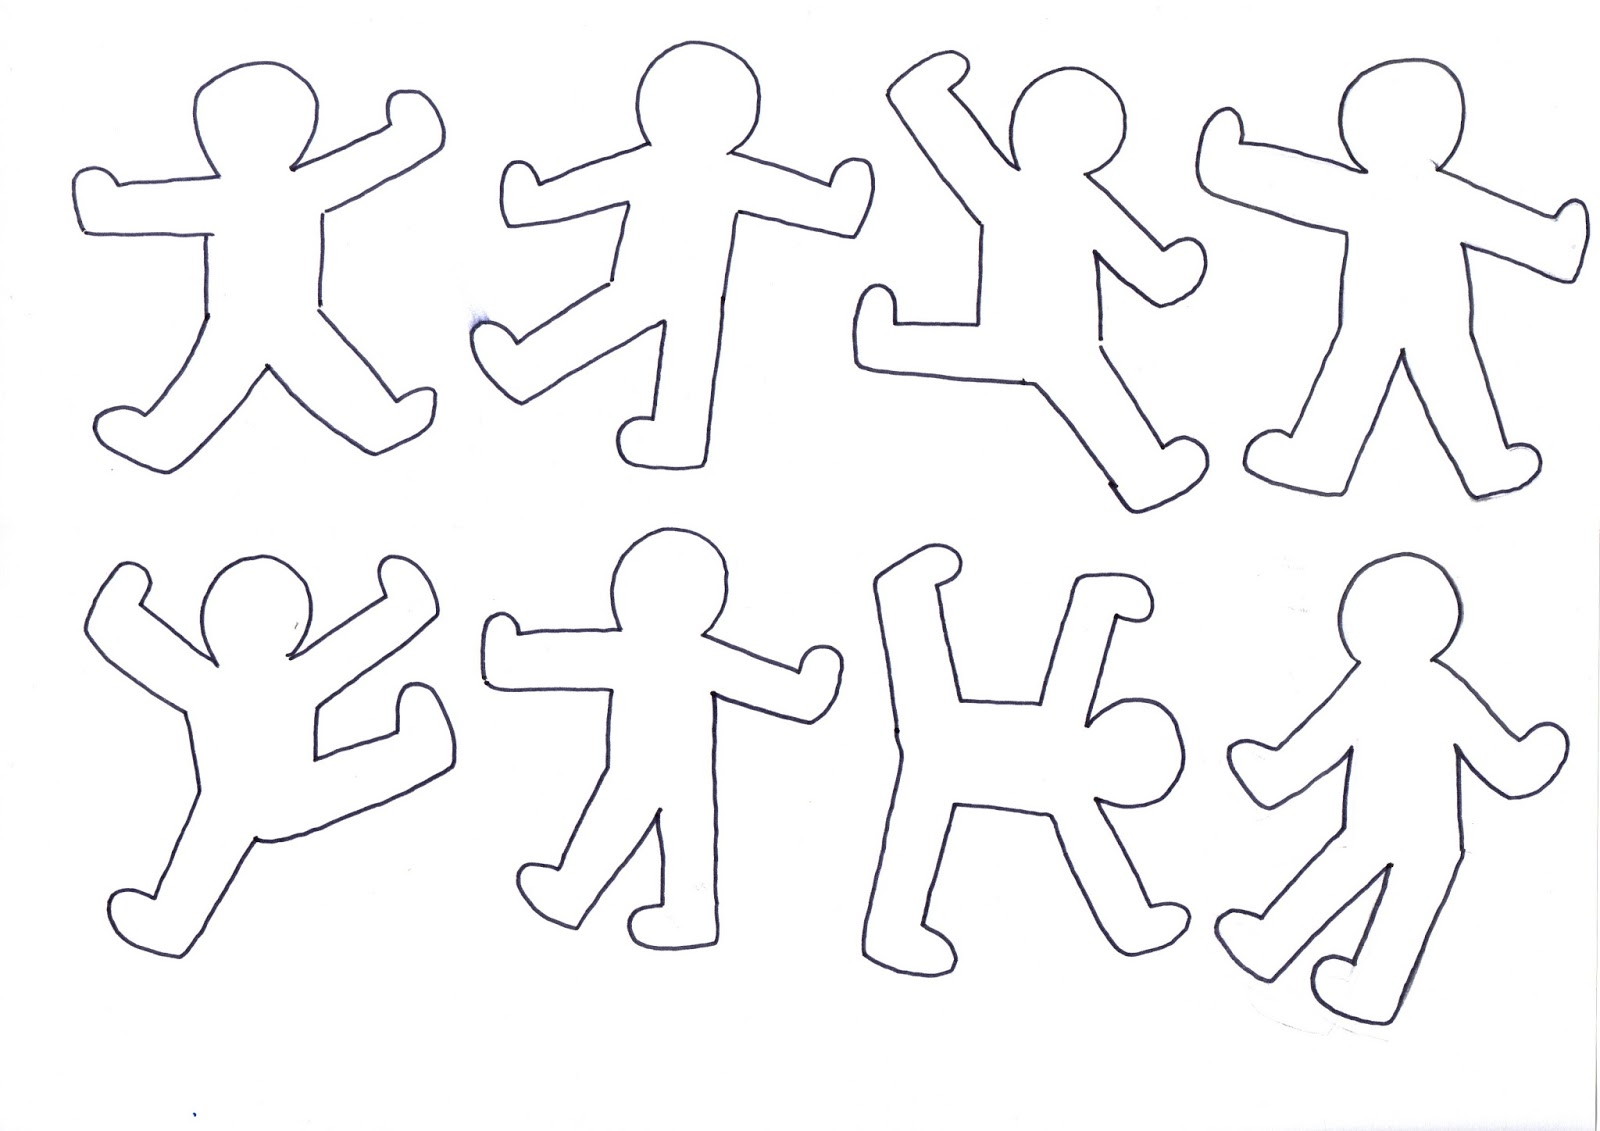 Maestra mariangela schede progetto artelandia for Keith haring figure templates